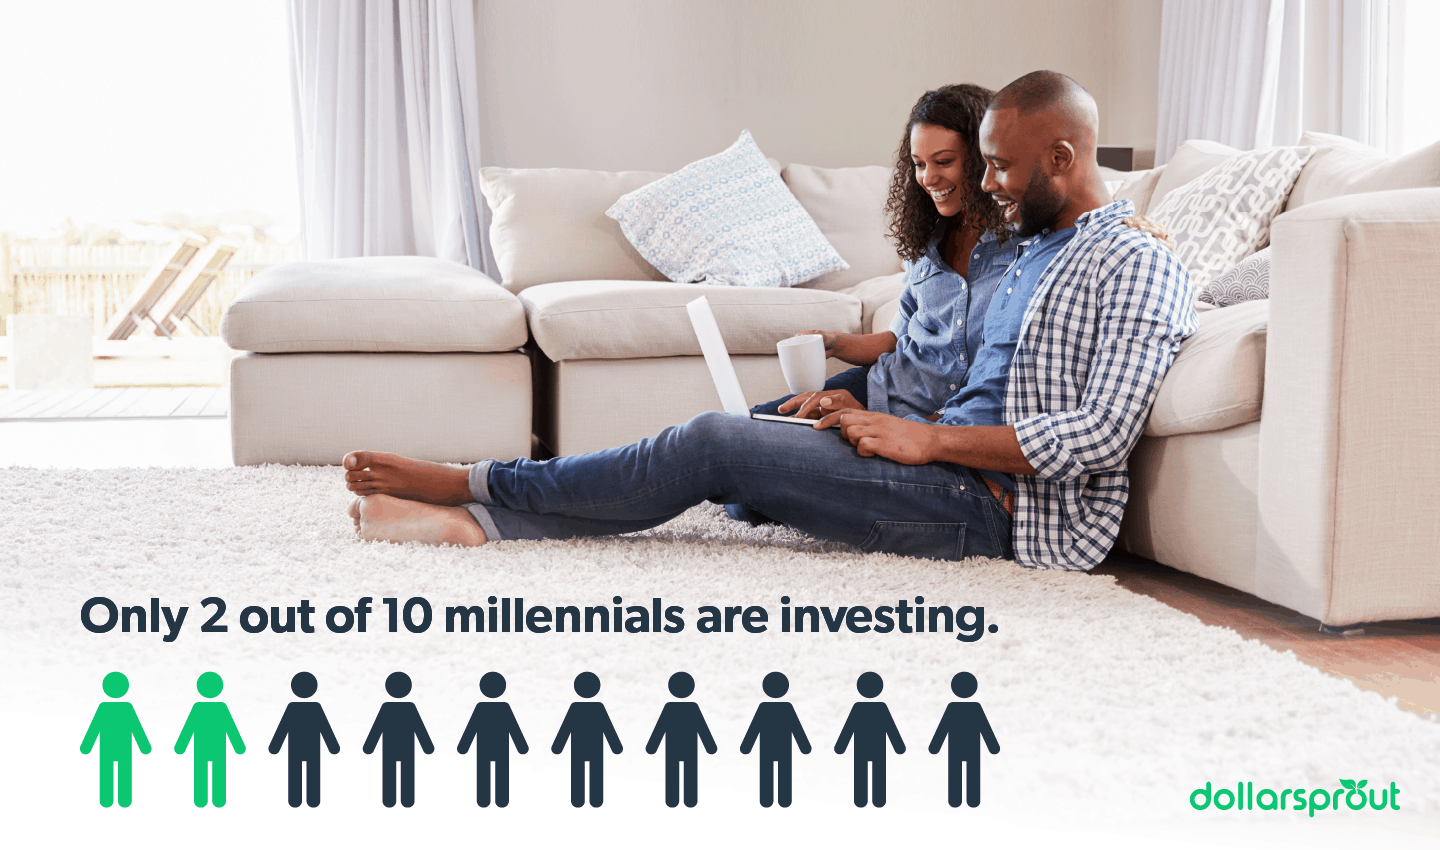 Only 2 out of 10 millennials are investing